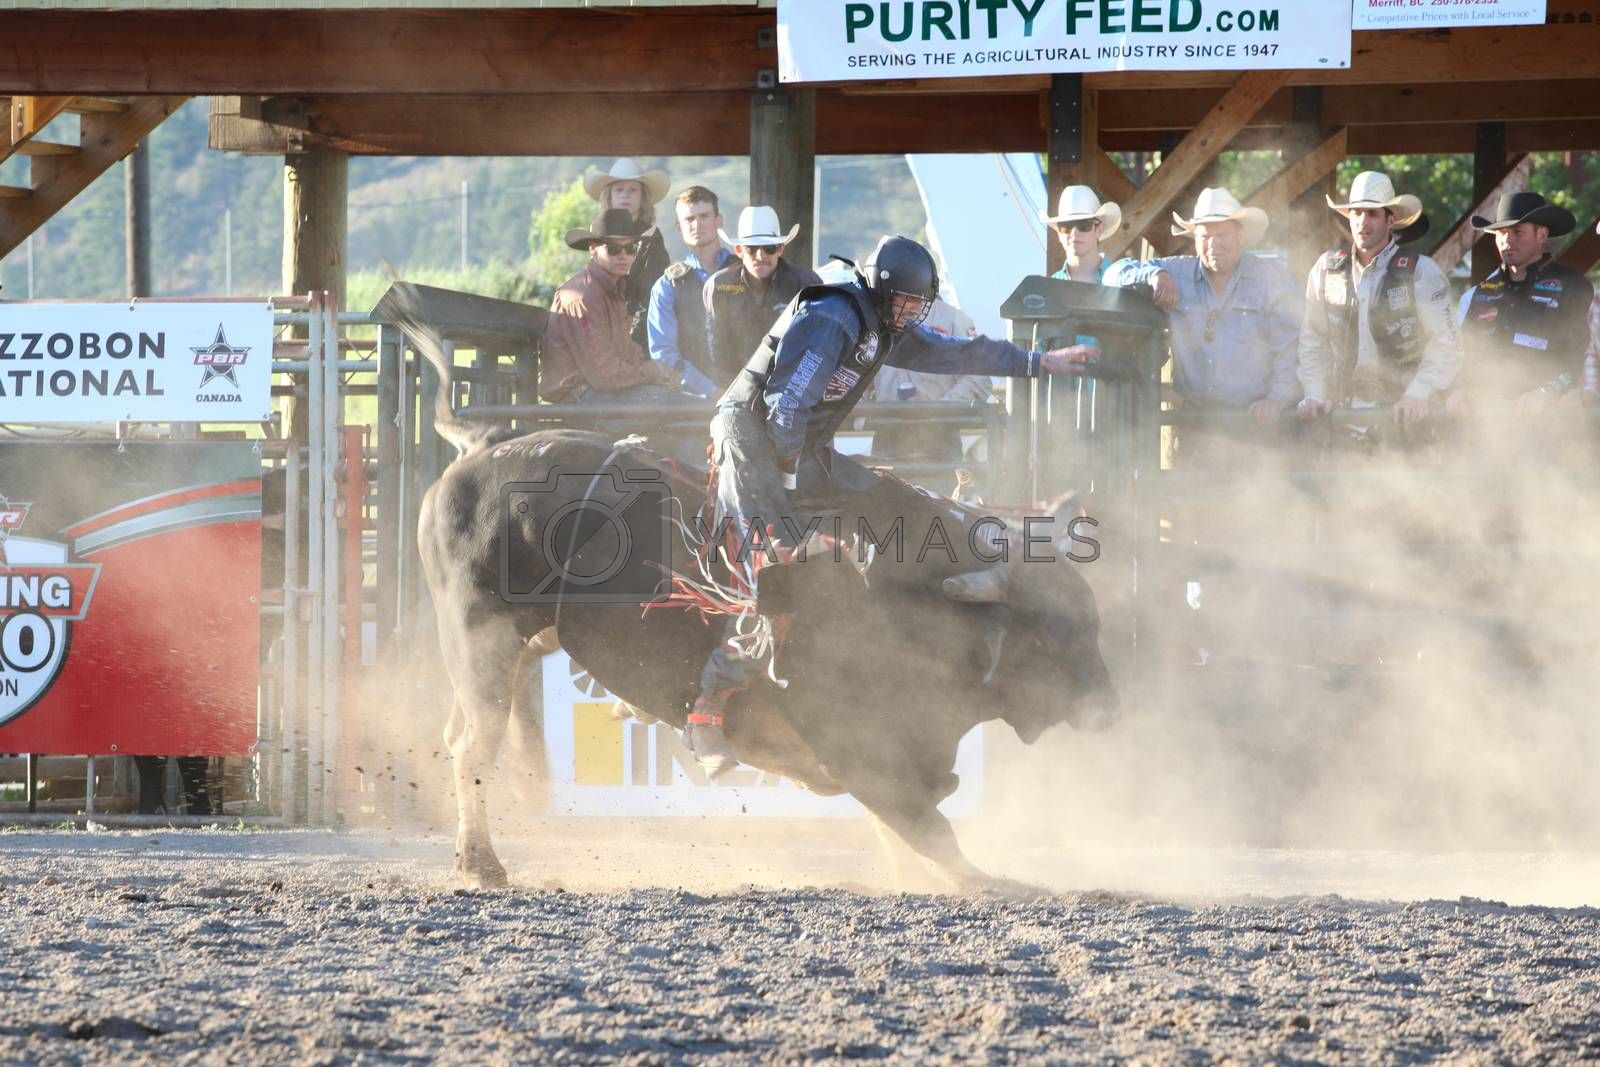 MERRITT, B.C. CANADA - May 30, 2015: Bull rider riding in the final round of The 3rd Annual Ty Pozzobon Invitational PBR Event.